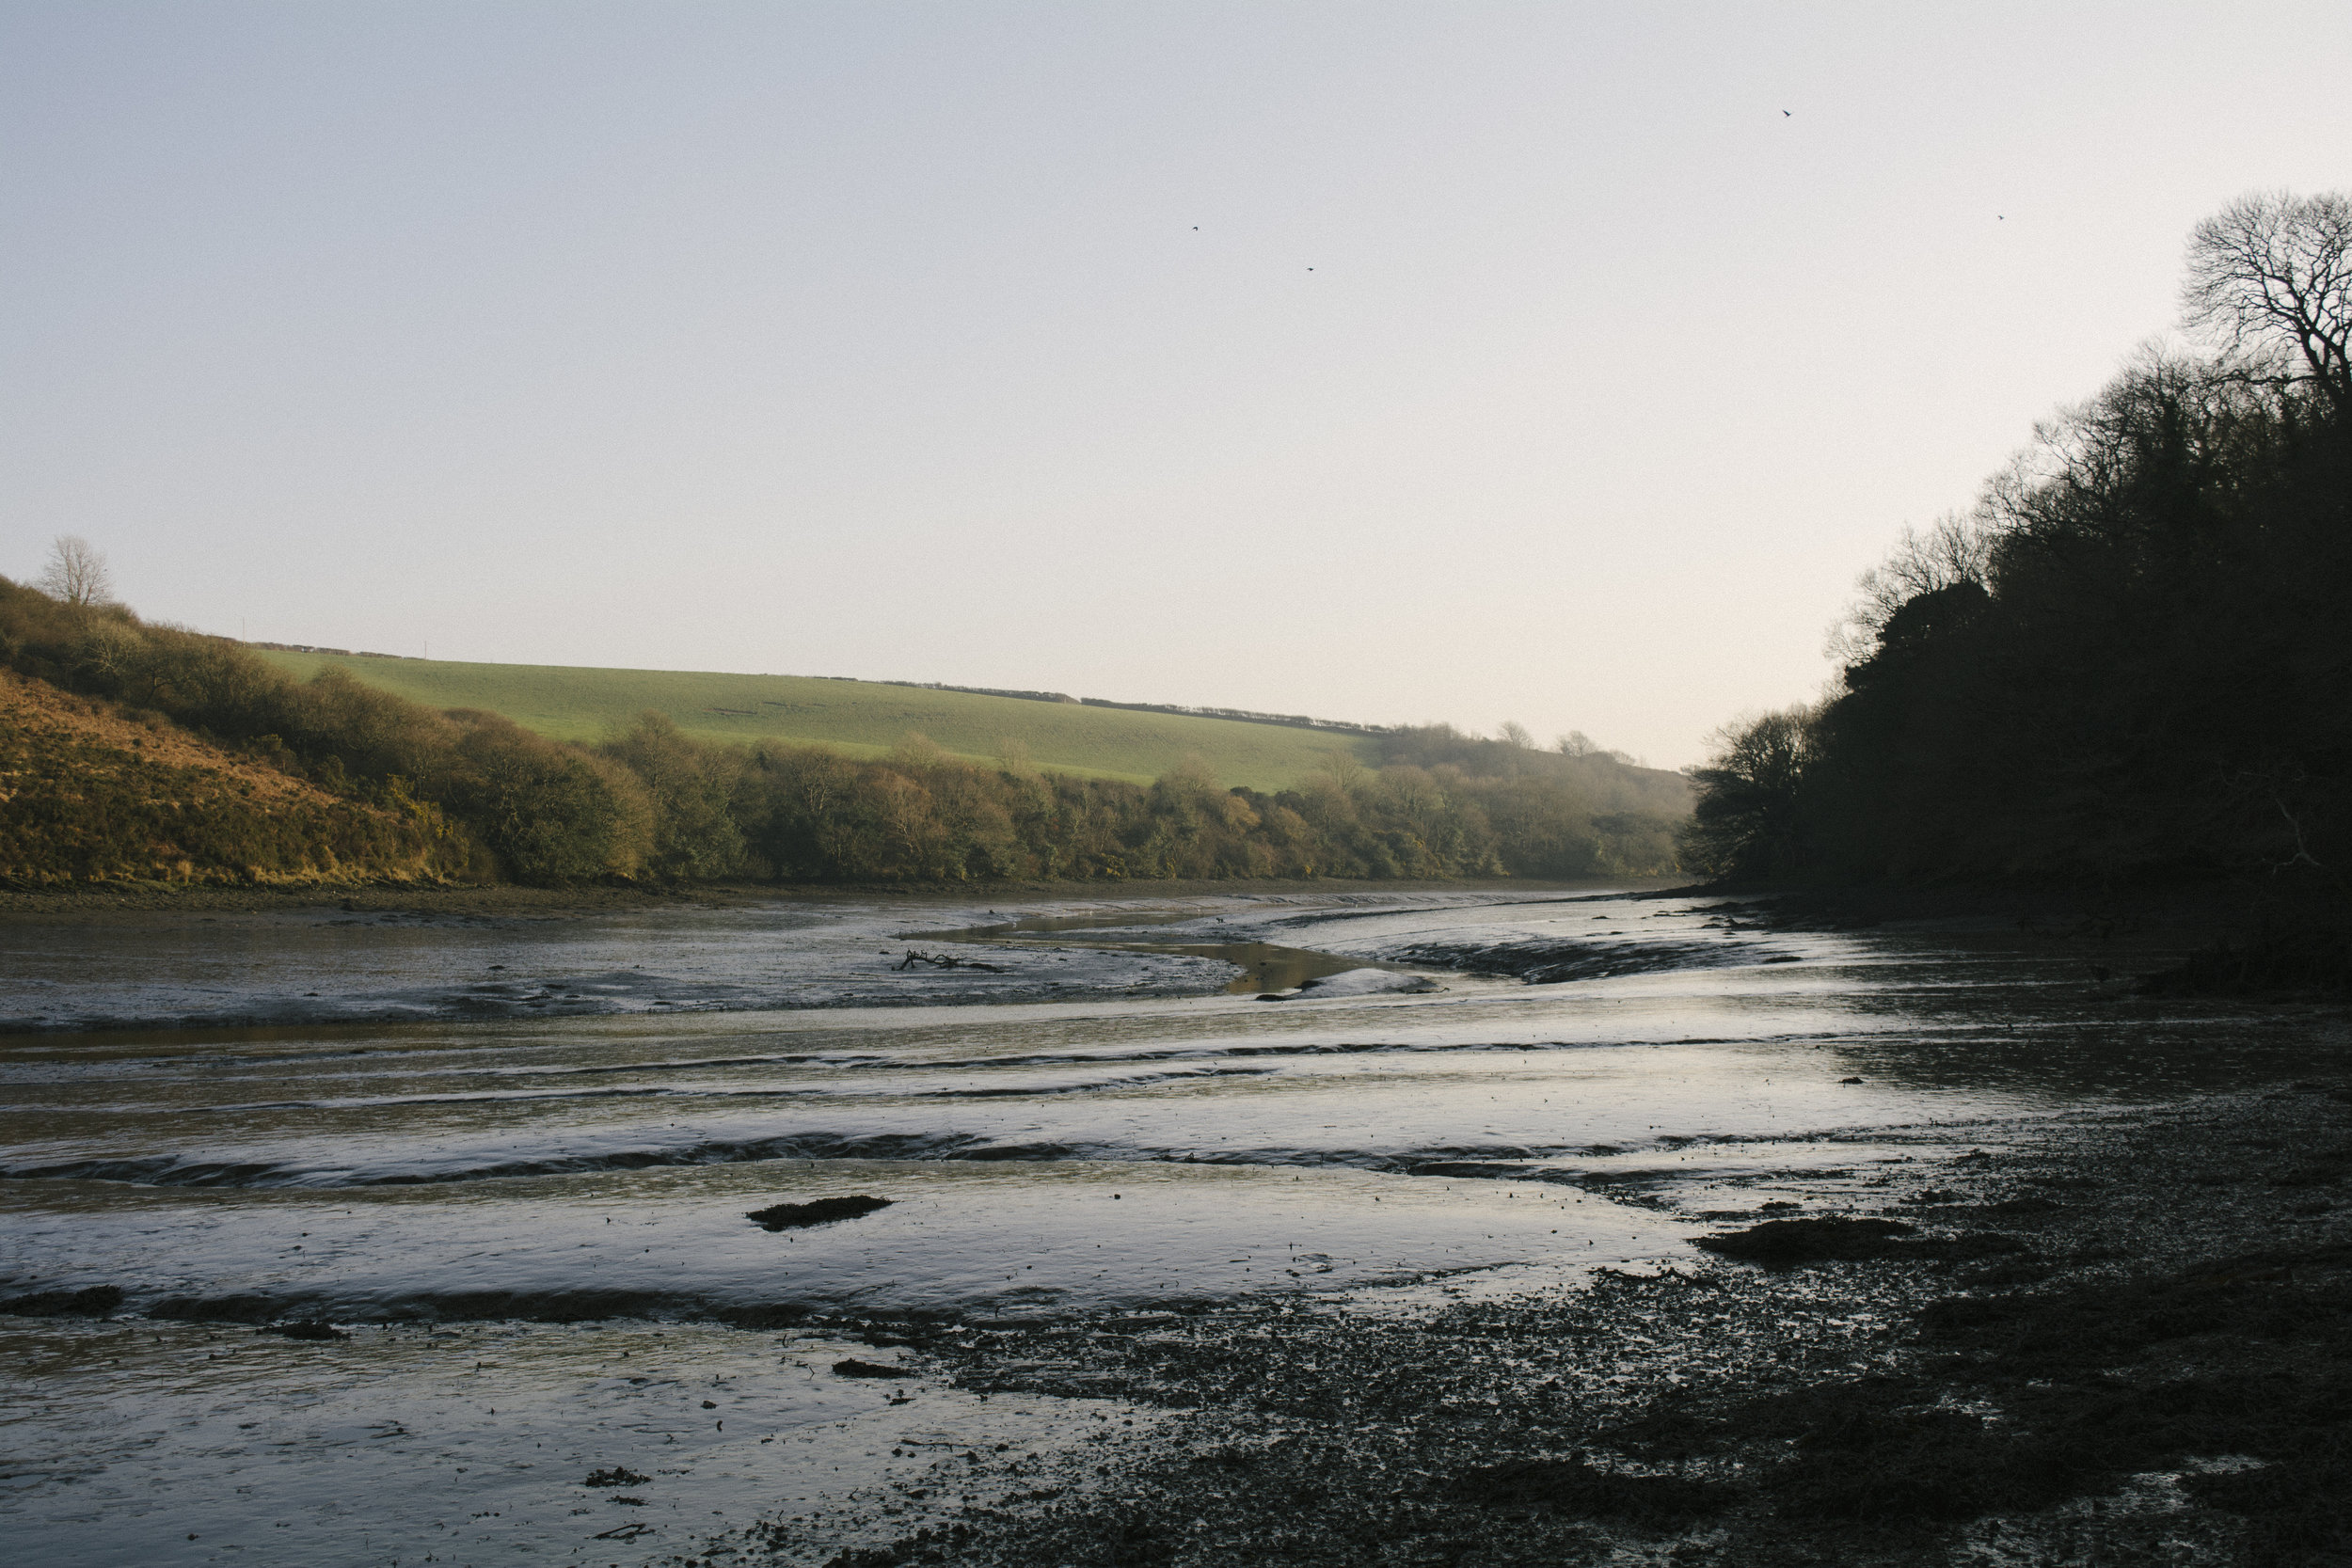 Mud flats along the Helford River, Cornwall. Taken by photographer Ruaidhri Marshall